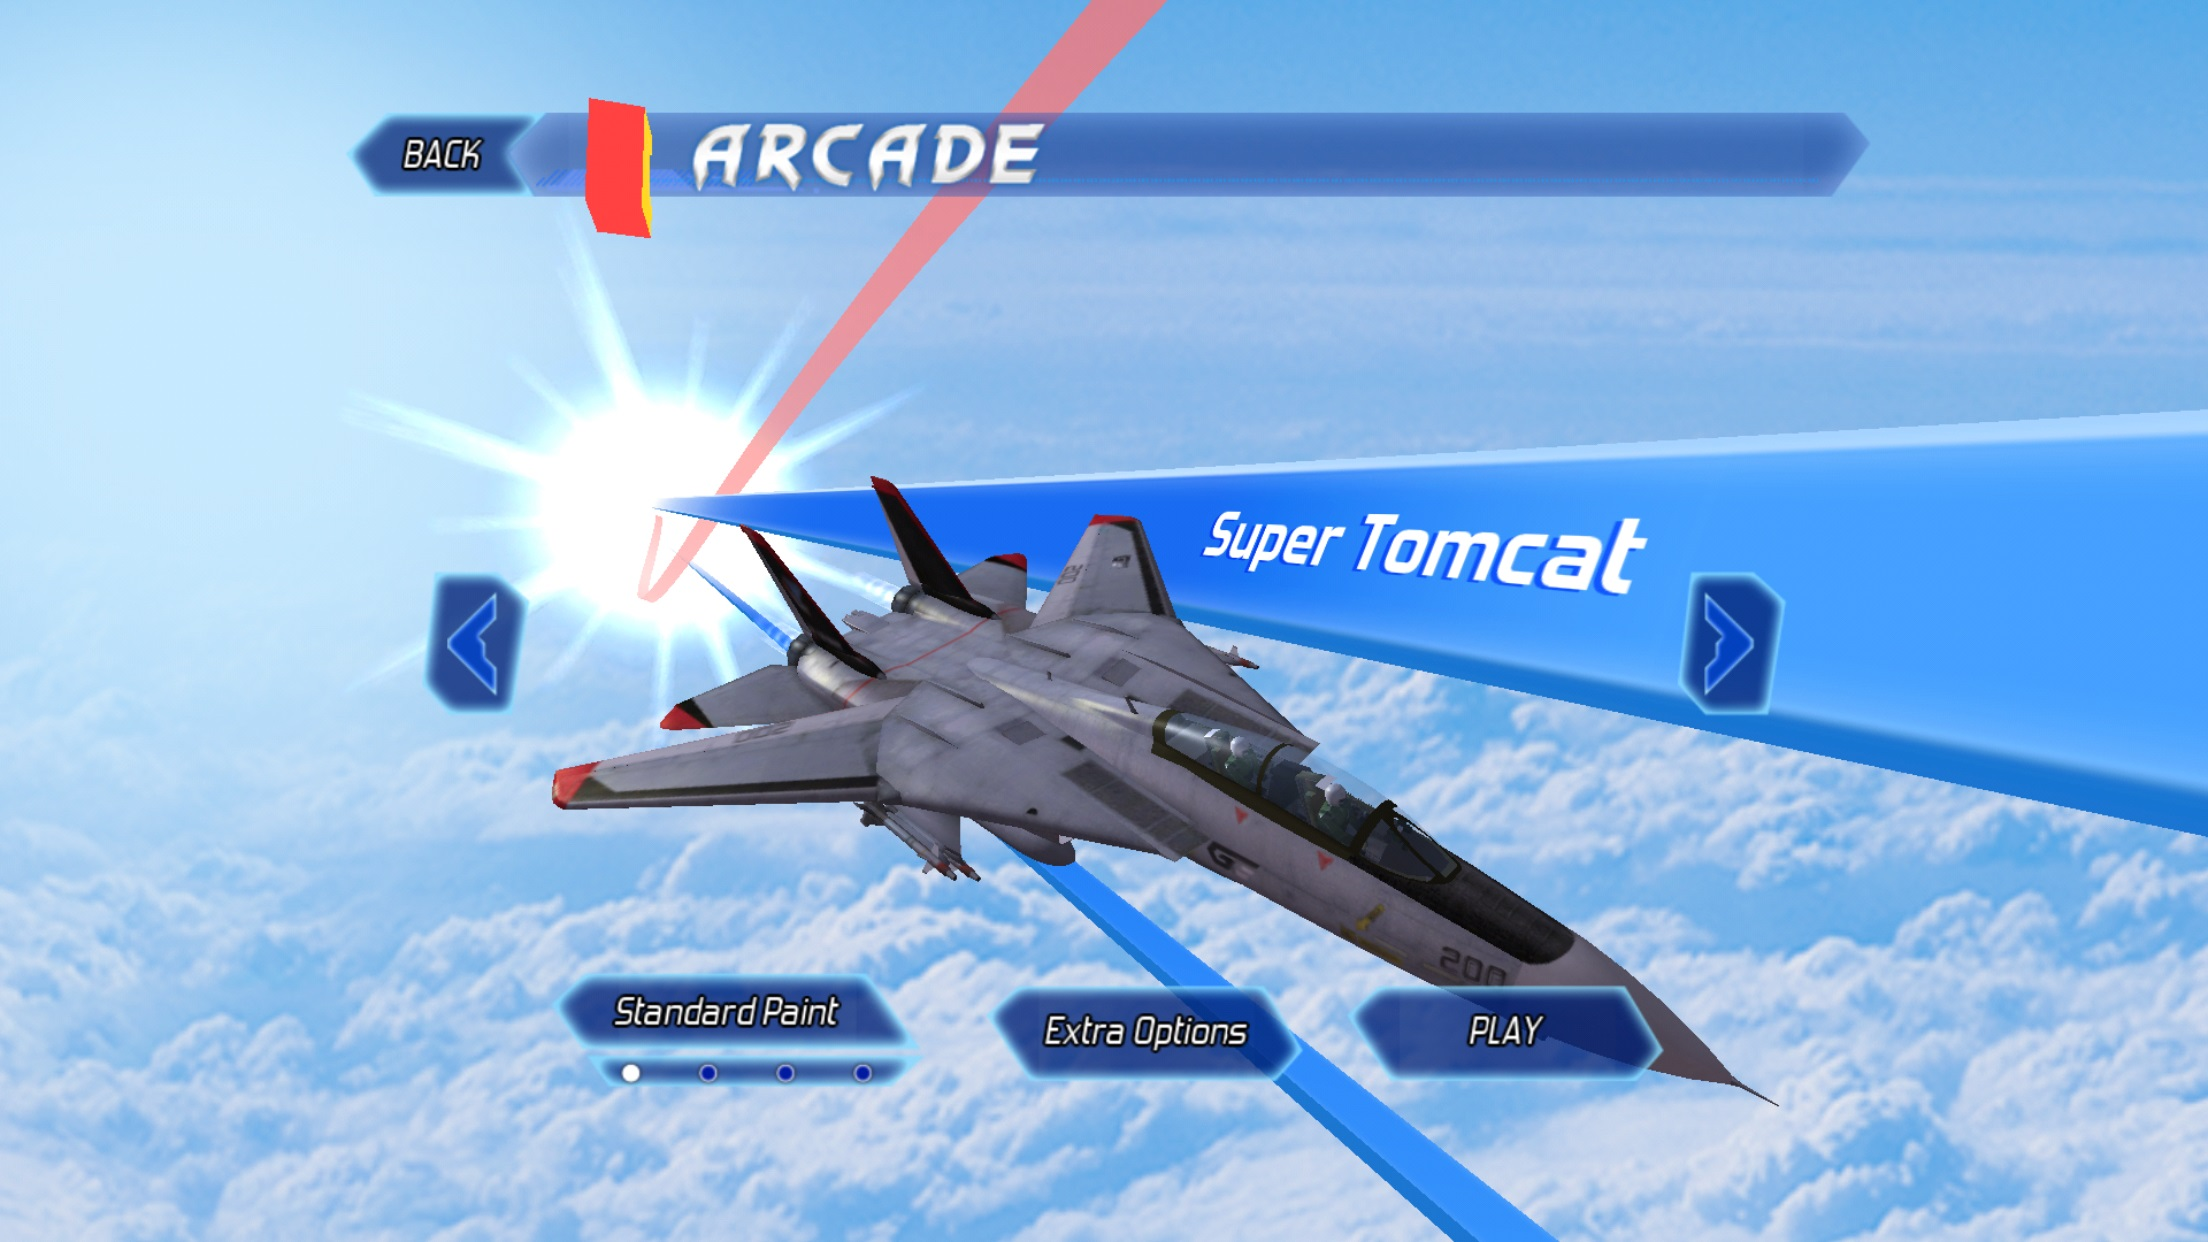 After Burner Climax is now free on mobile